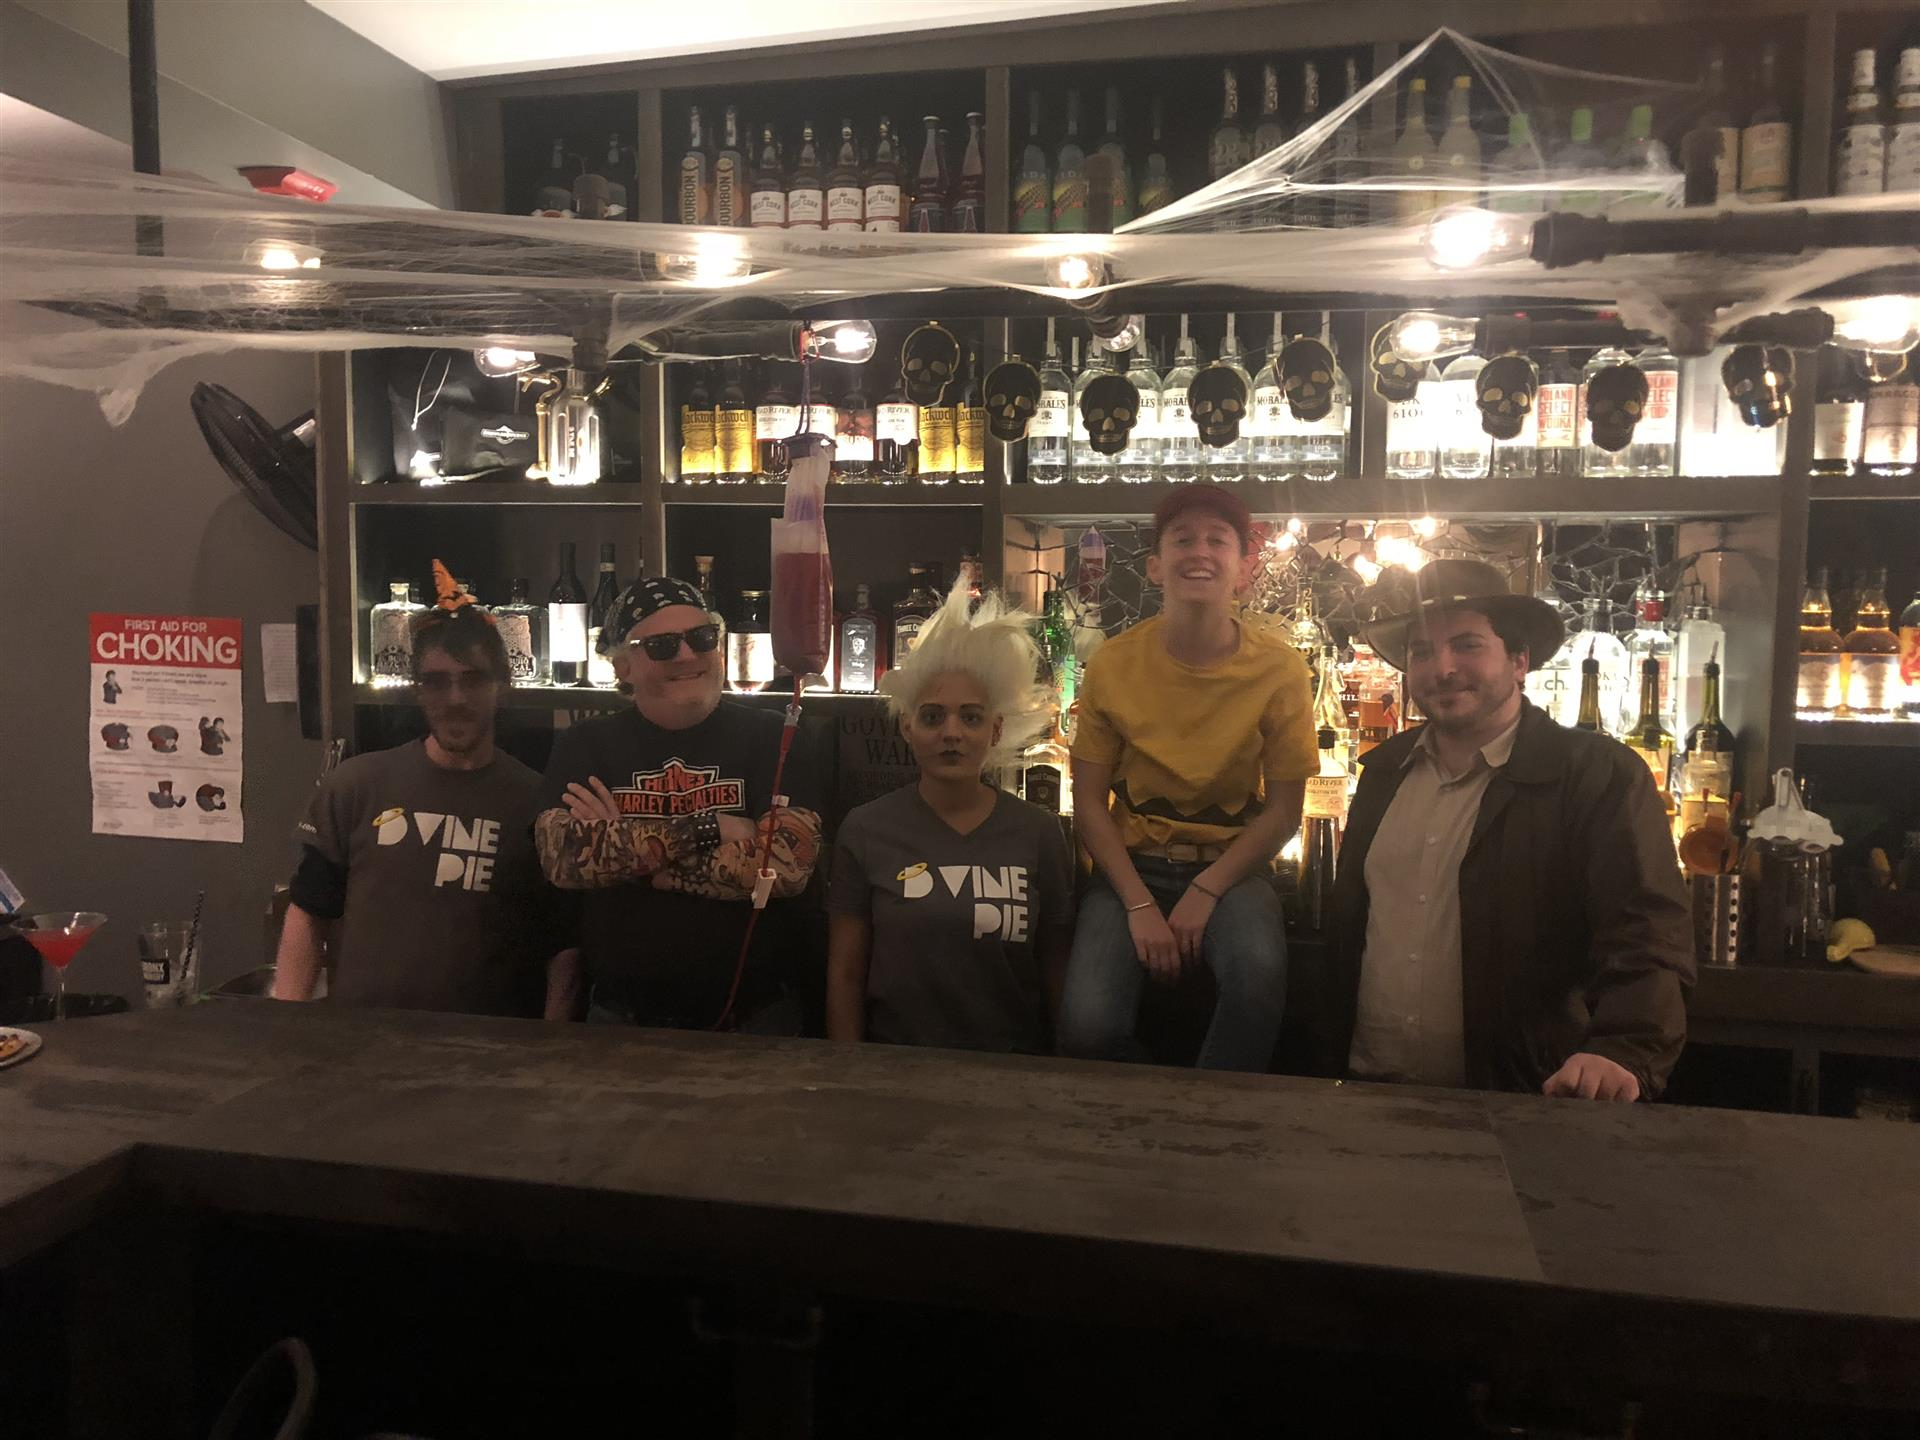 group of people standing behind the bar area